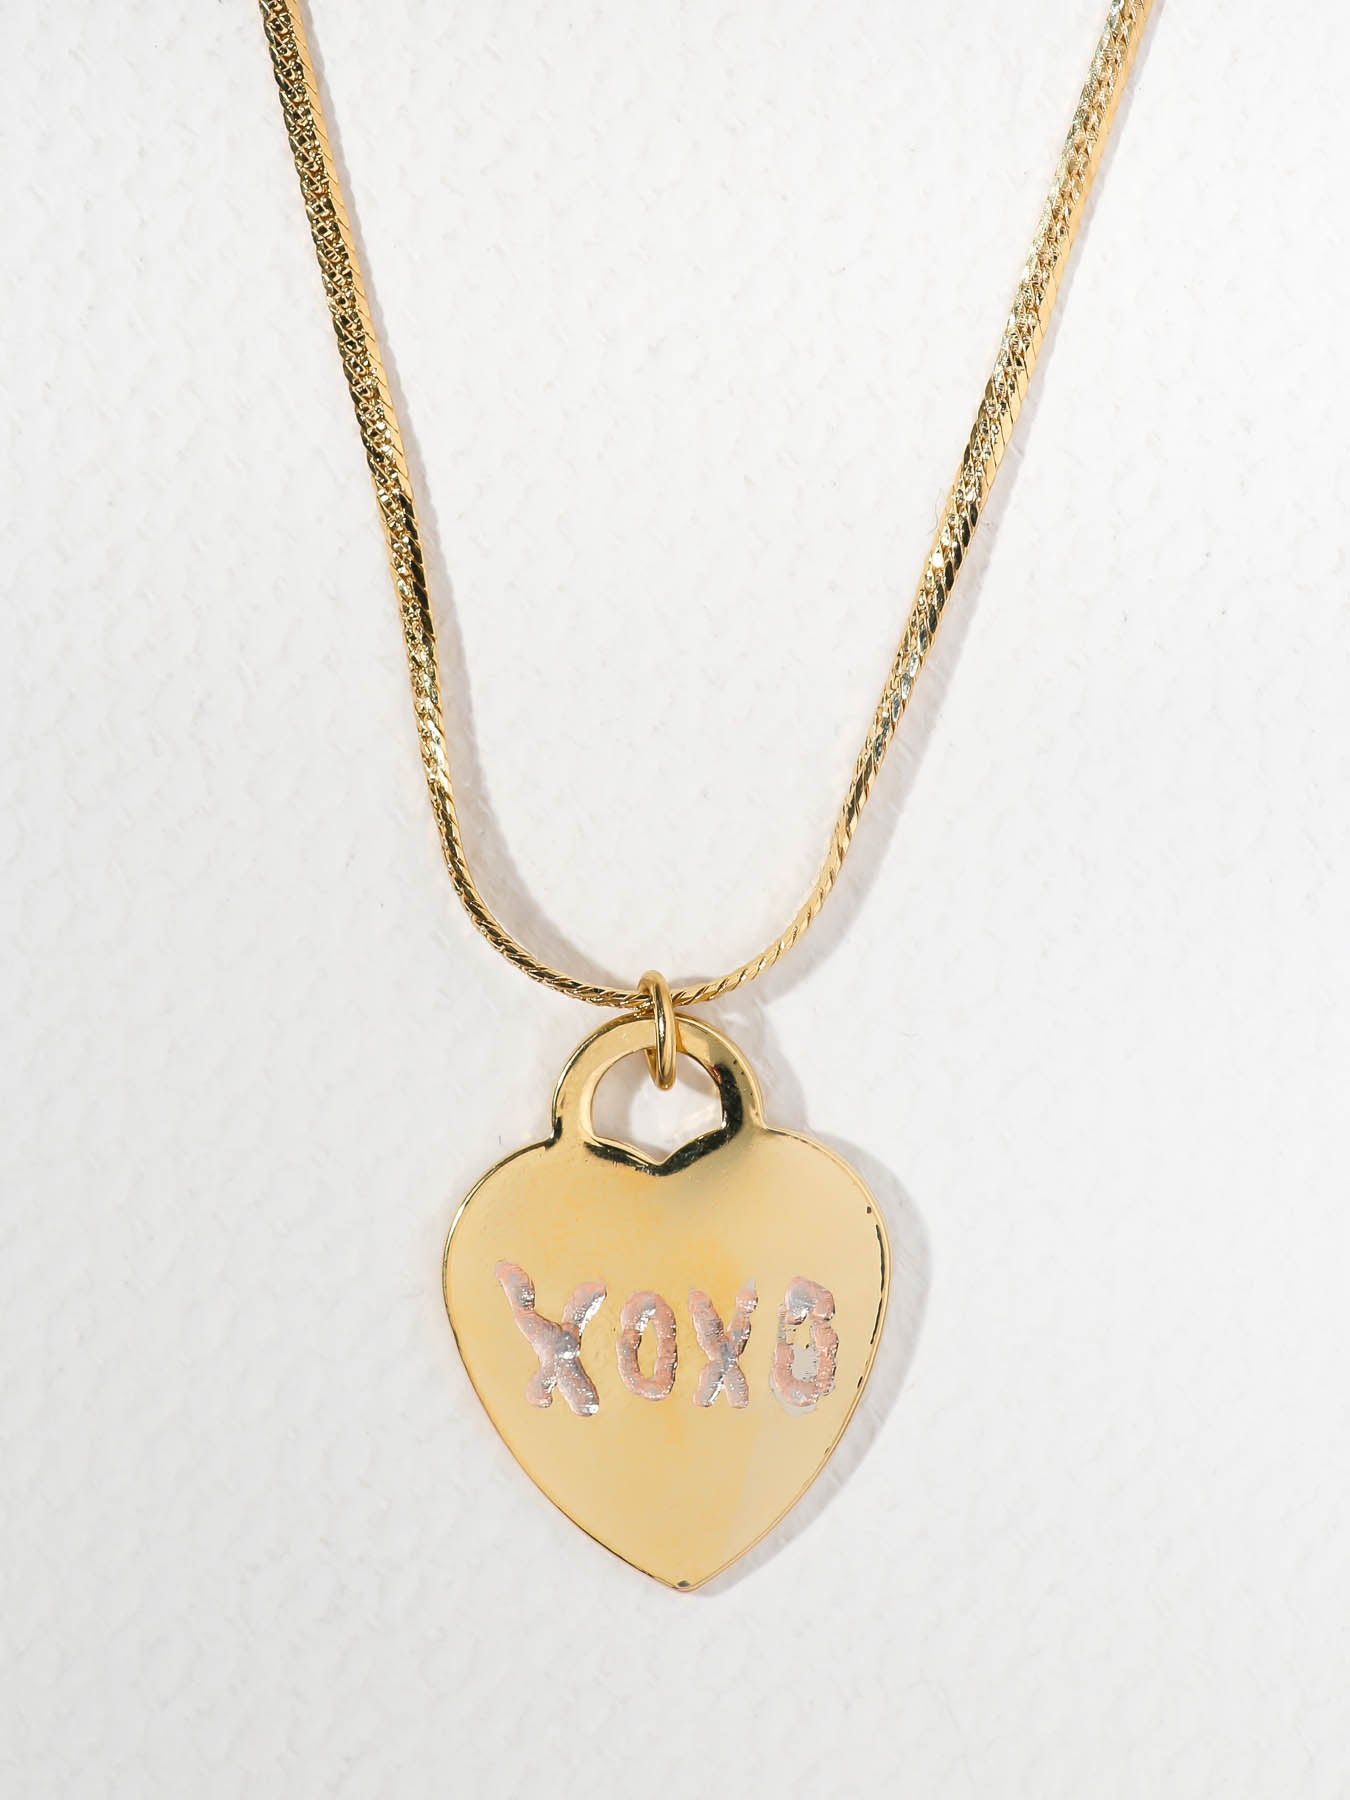 Necklaces The XOXO Heart Necklace Vanessa Mooney